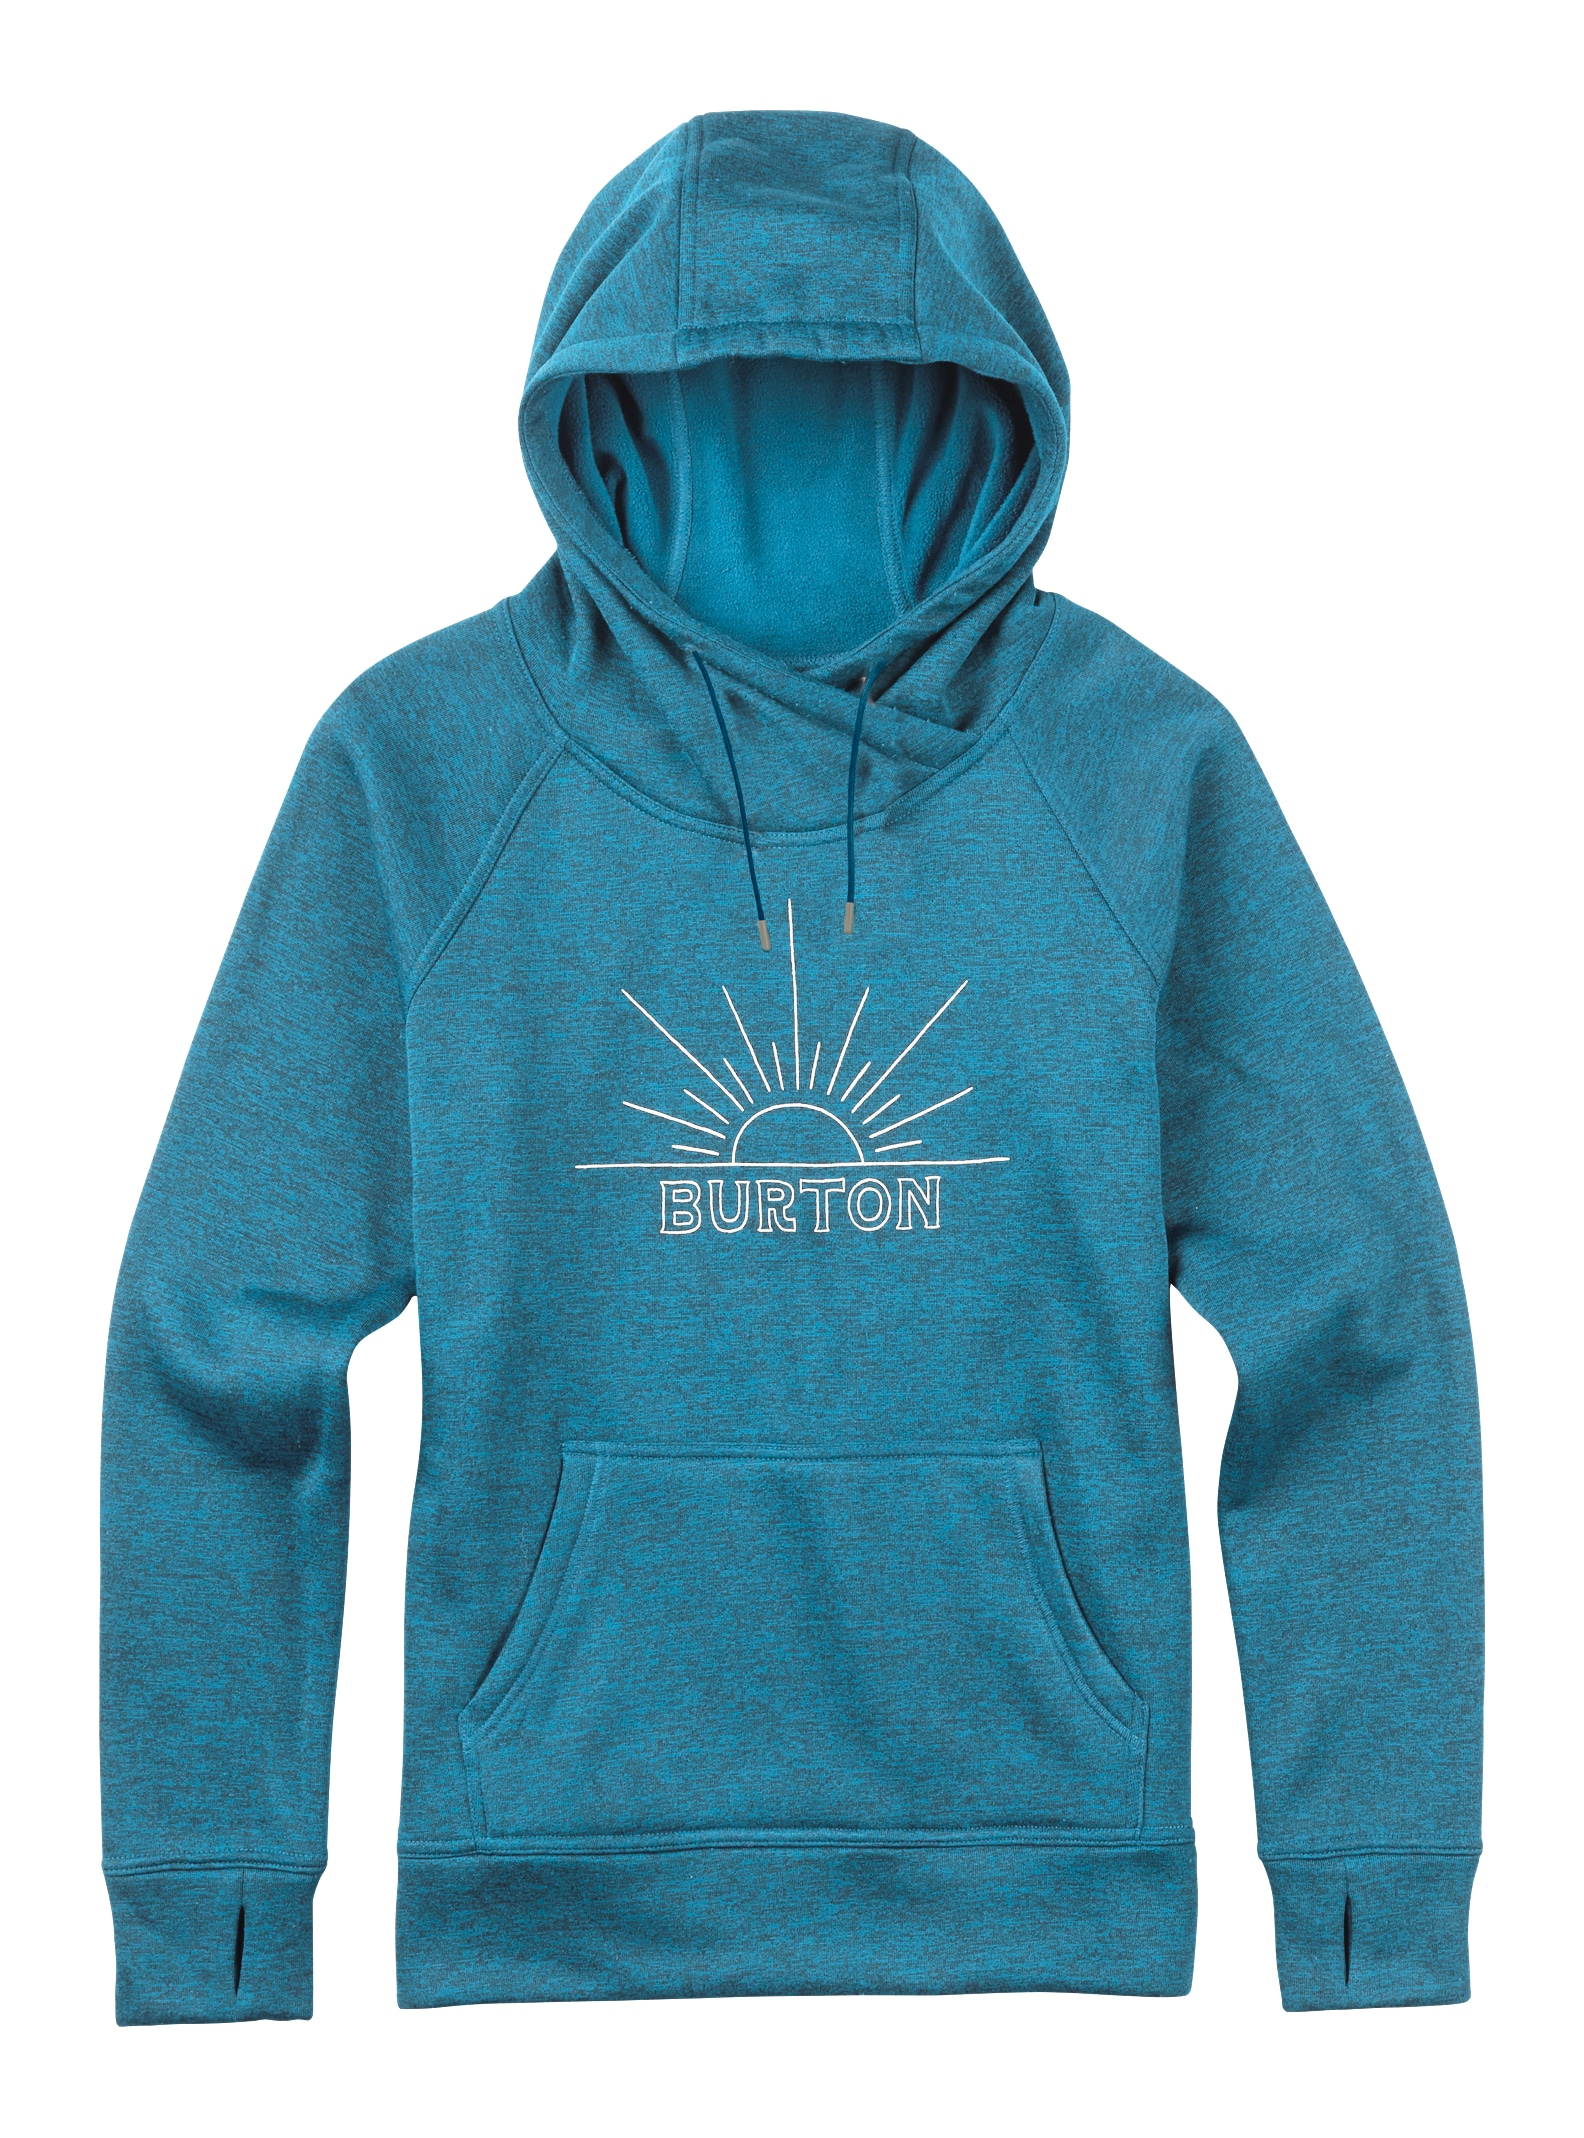 Burton Quartz Pullover Hoodie shown in True Blue / Everglade Heather